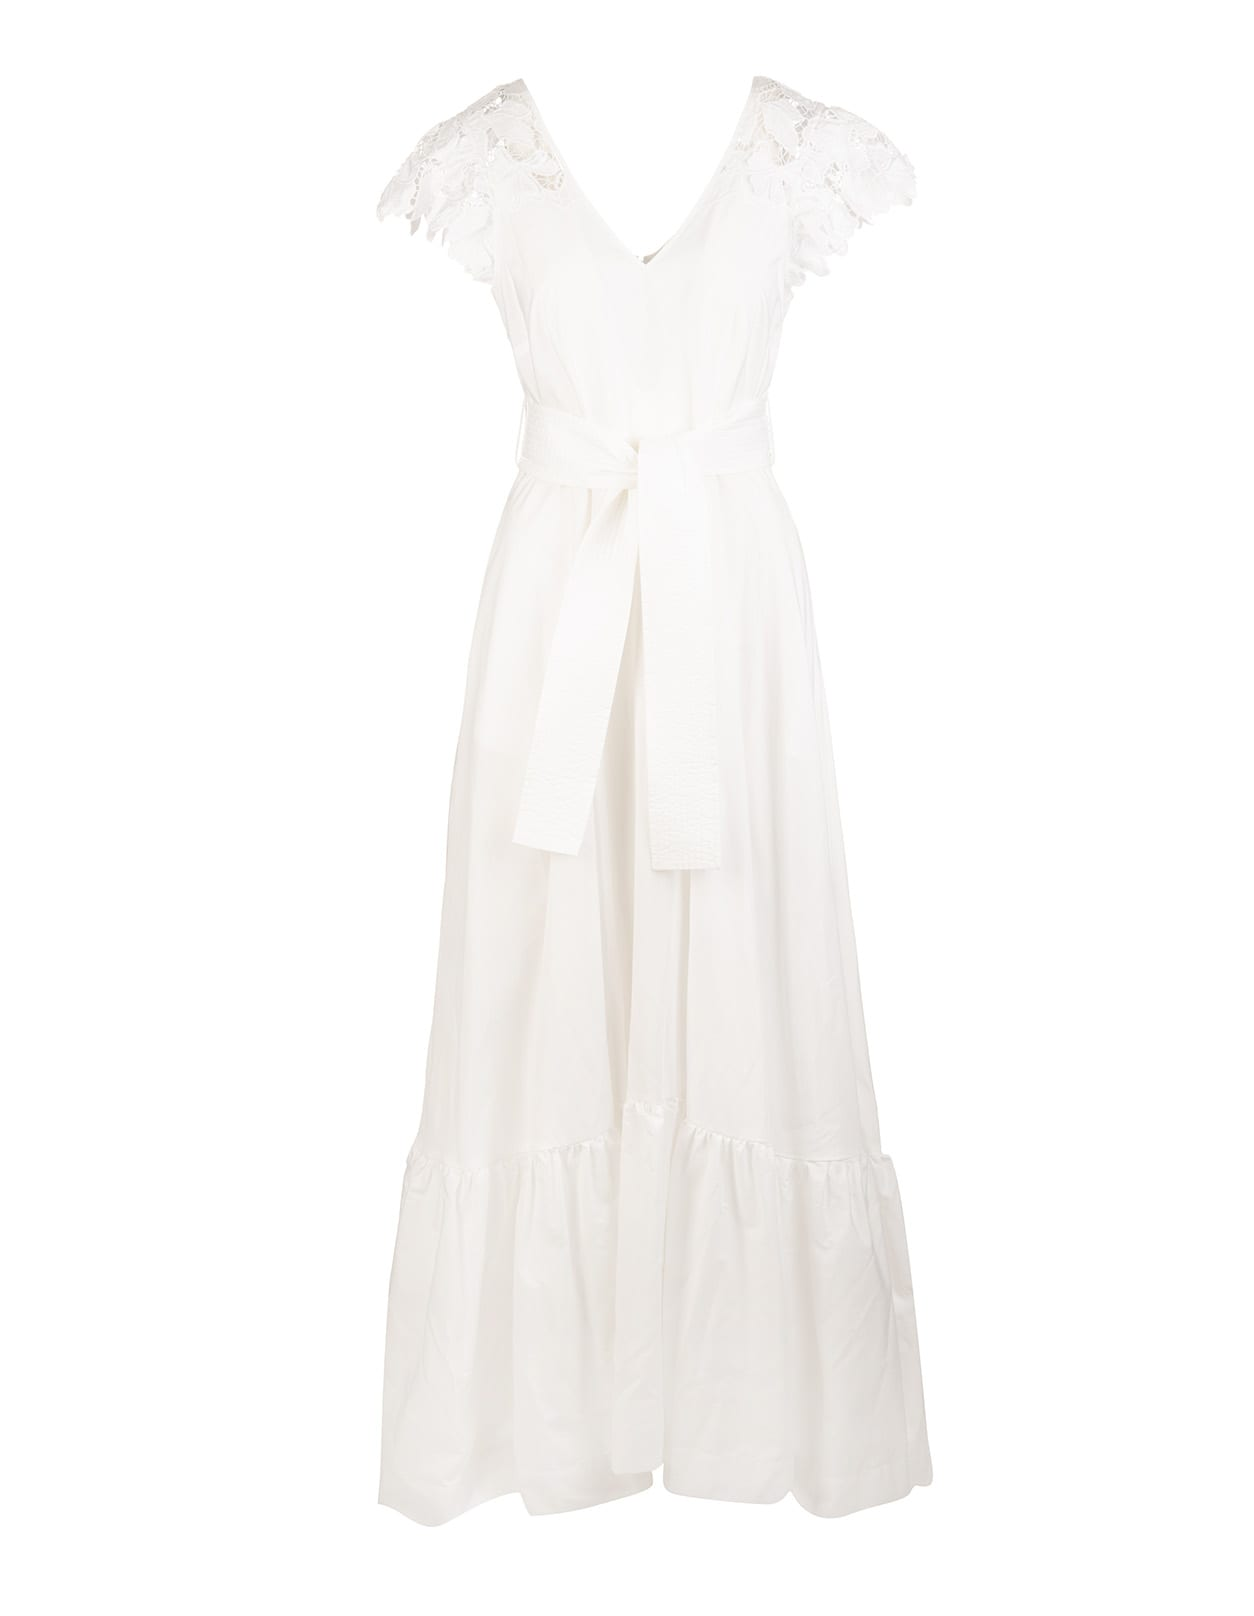 A.R.O.H. long dress in white cotton with front and back V-neck, short wide sleeve in lace (circular cap), soft skirt with horizontal bands, back zip closure and waist highlighted by a belt in tone with front knot. Composition: 100% Cotton